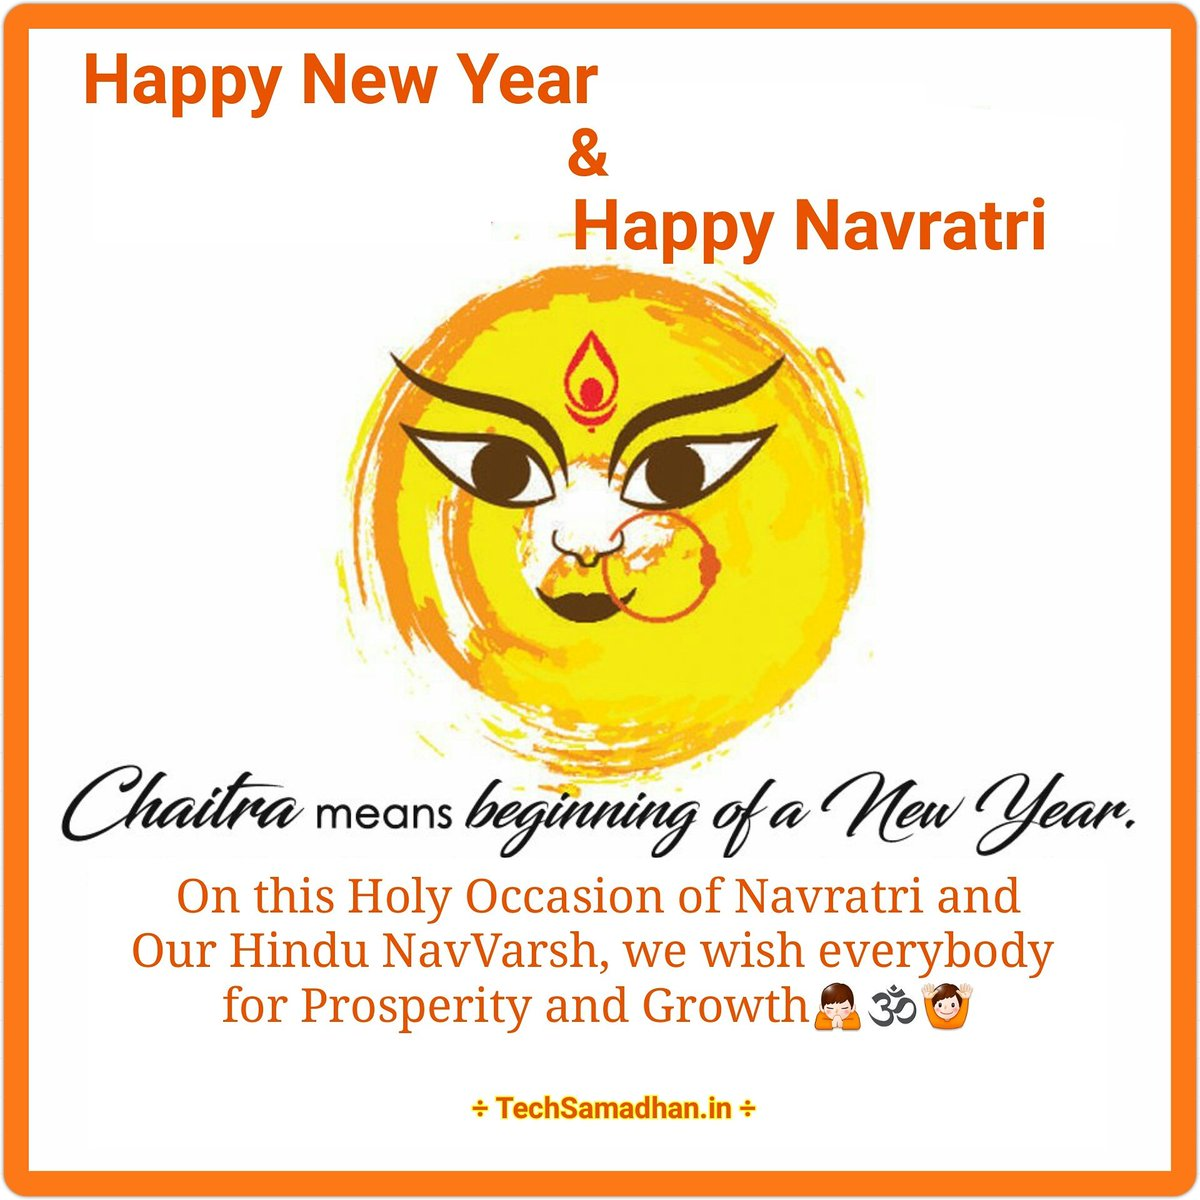 #HappyNewYear &amp; #HappyNavratri On this Holy Occasion of Navratri and Our Hindu NavVarsh, we wish everybody for Prosperity and Growth<br>http://pic.twitter.com/JjKQDOlAOy